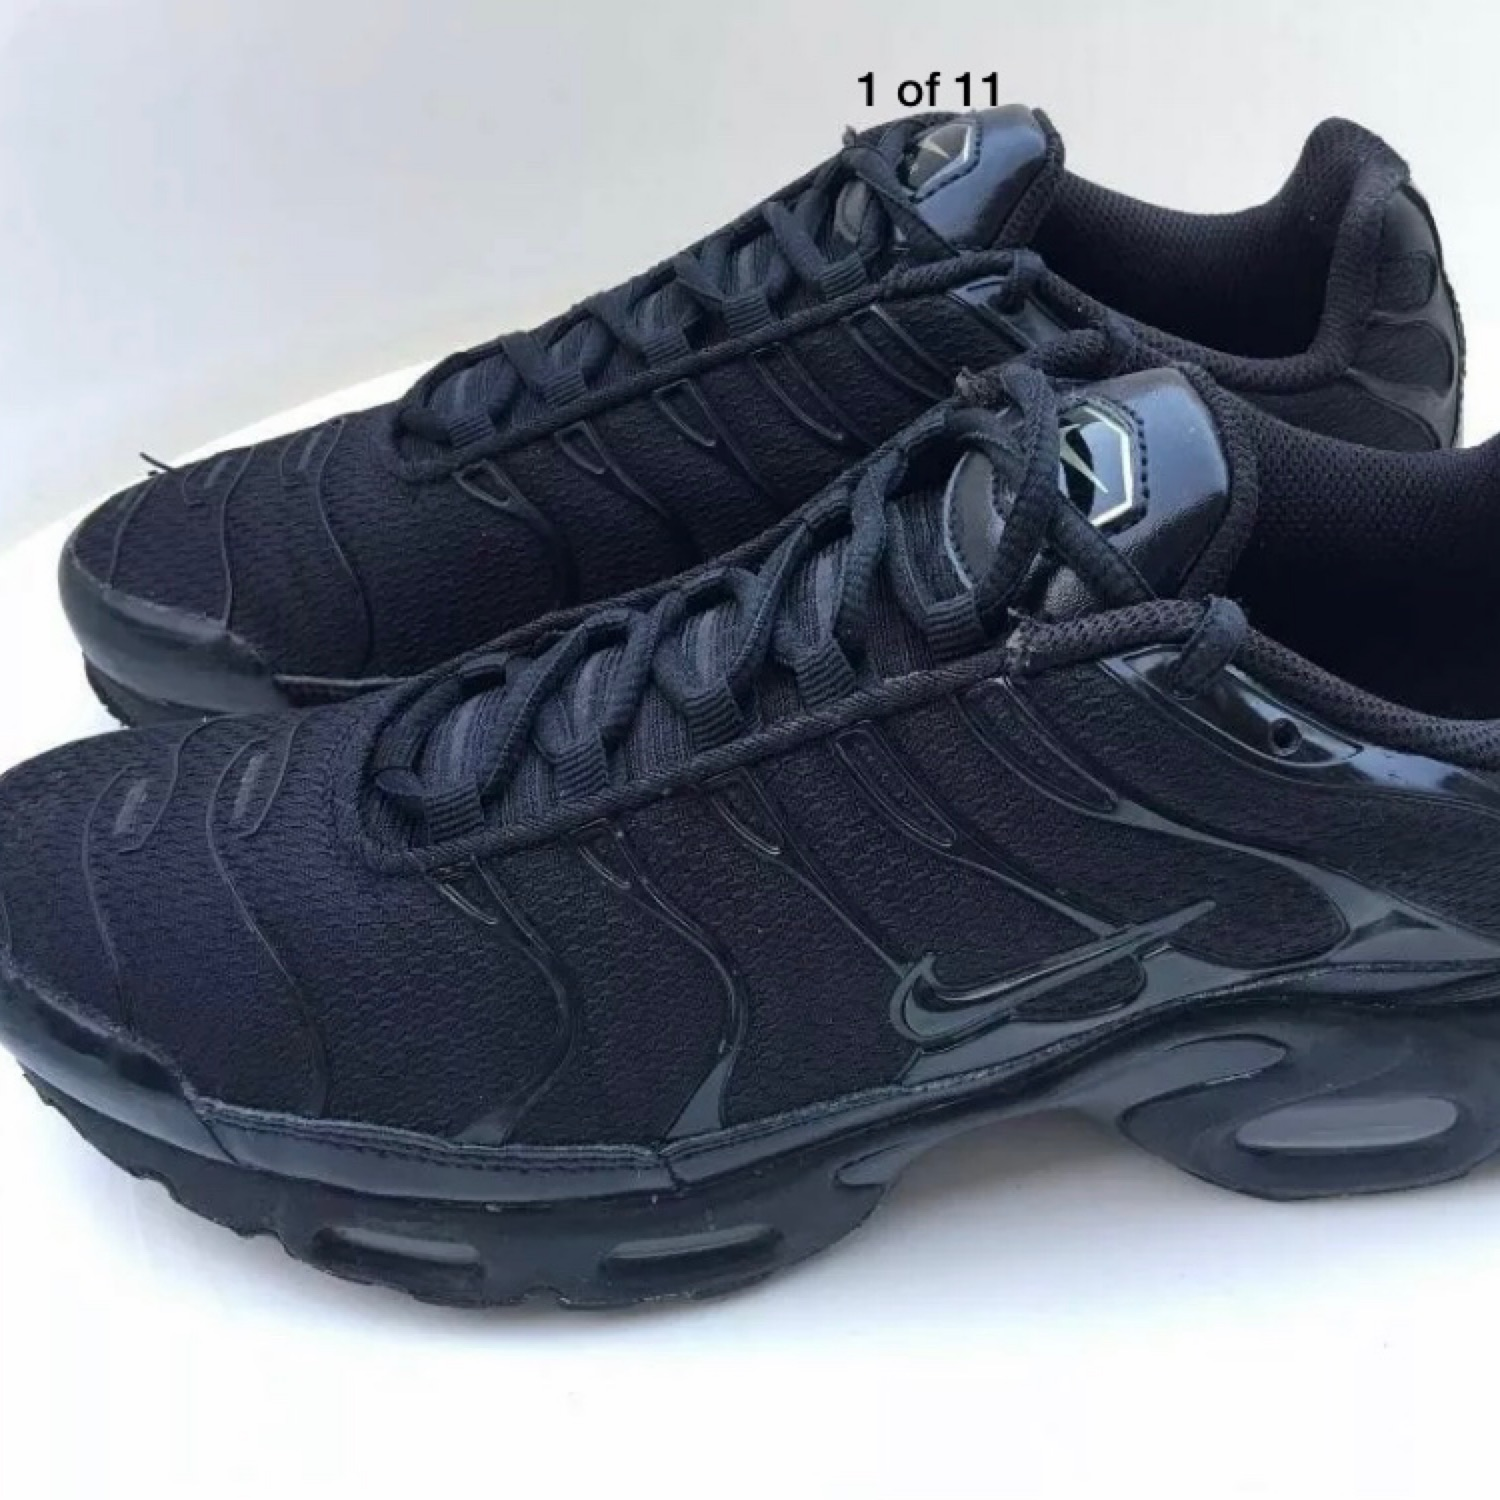 sneakers for cheap sneakers for cheap half off Nike Air Max Plus Tn Tuned Black Size 7.5